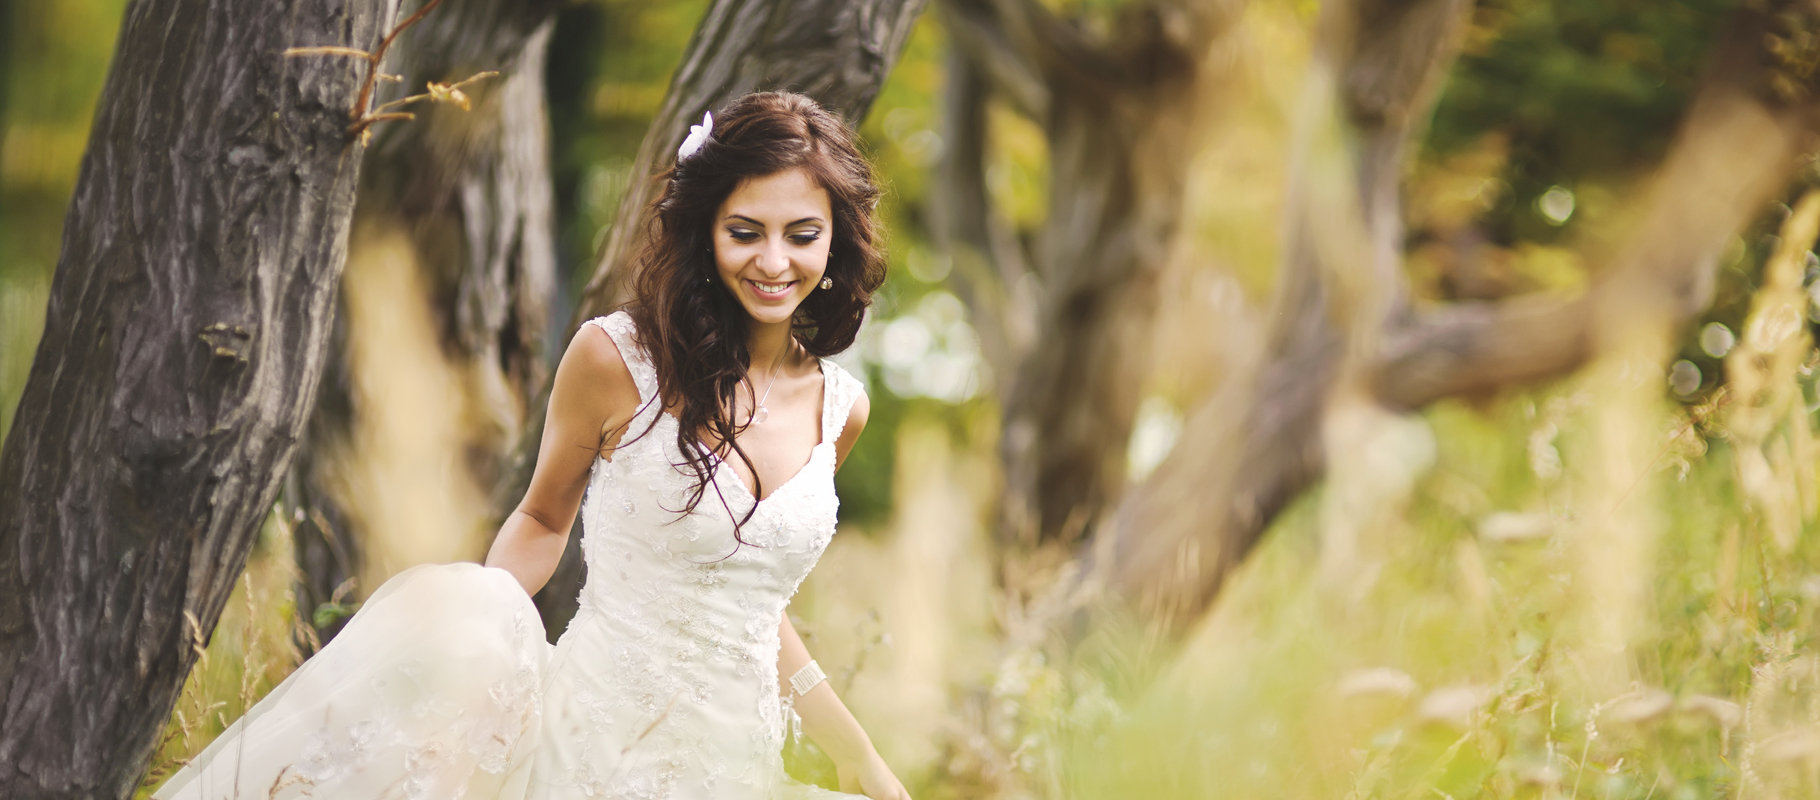 Buy & Sell Second Hand Wedding Dresses